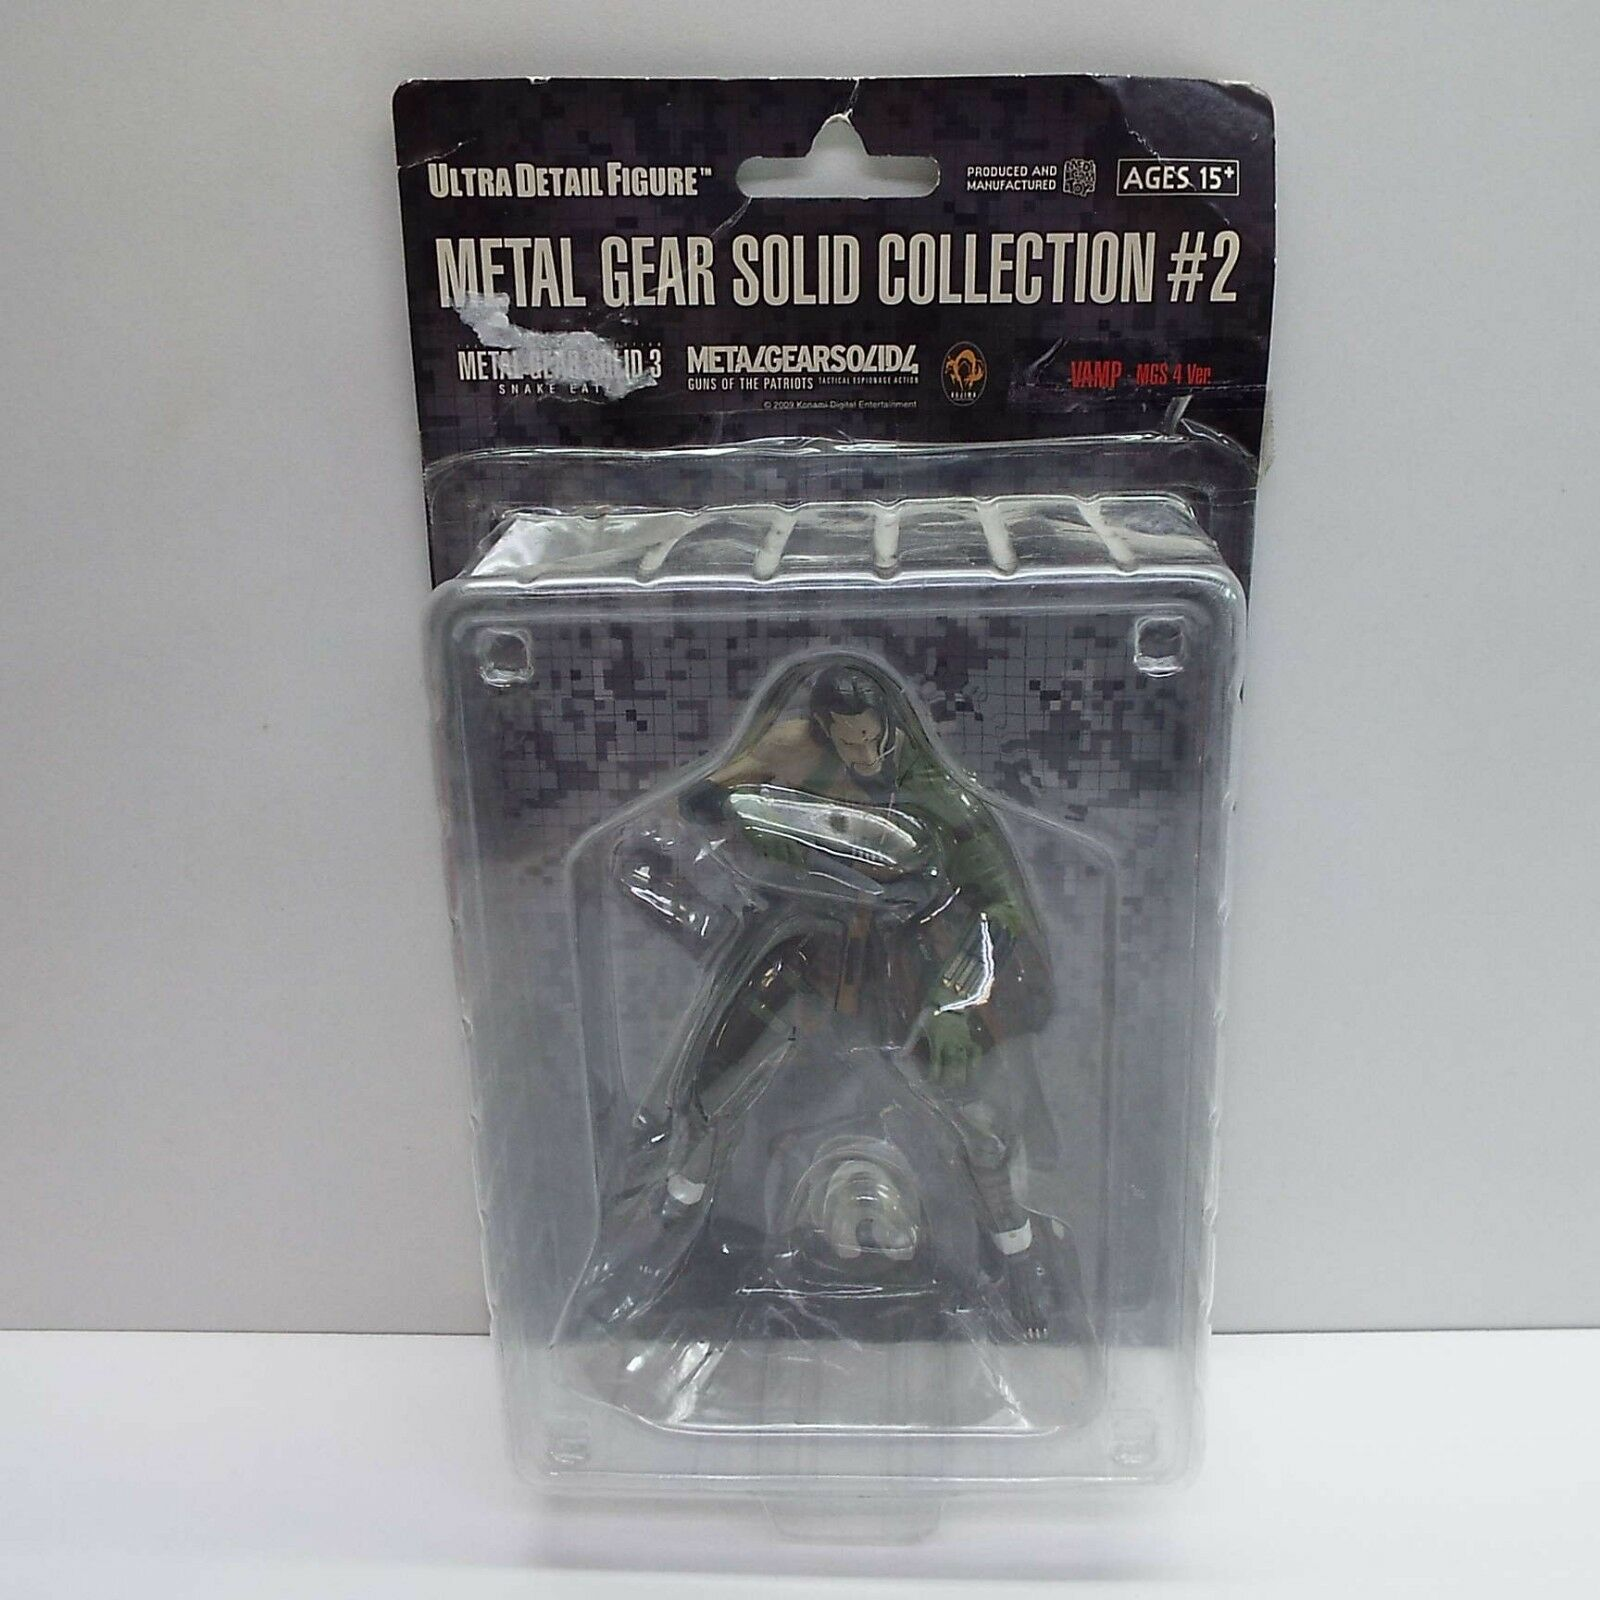 METAL GEAR SOLID COLLECTION FIGURE VAMP MGS 4 VER. (LOOK DESCRIPTION) H2200